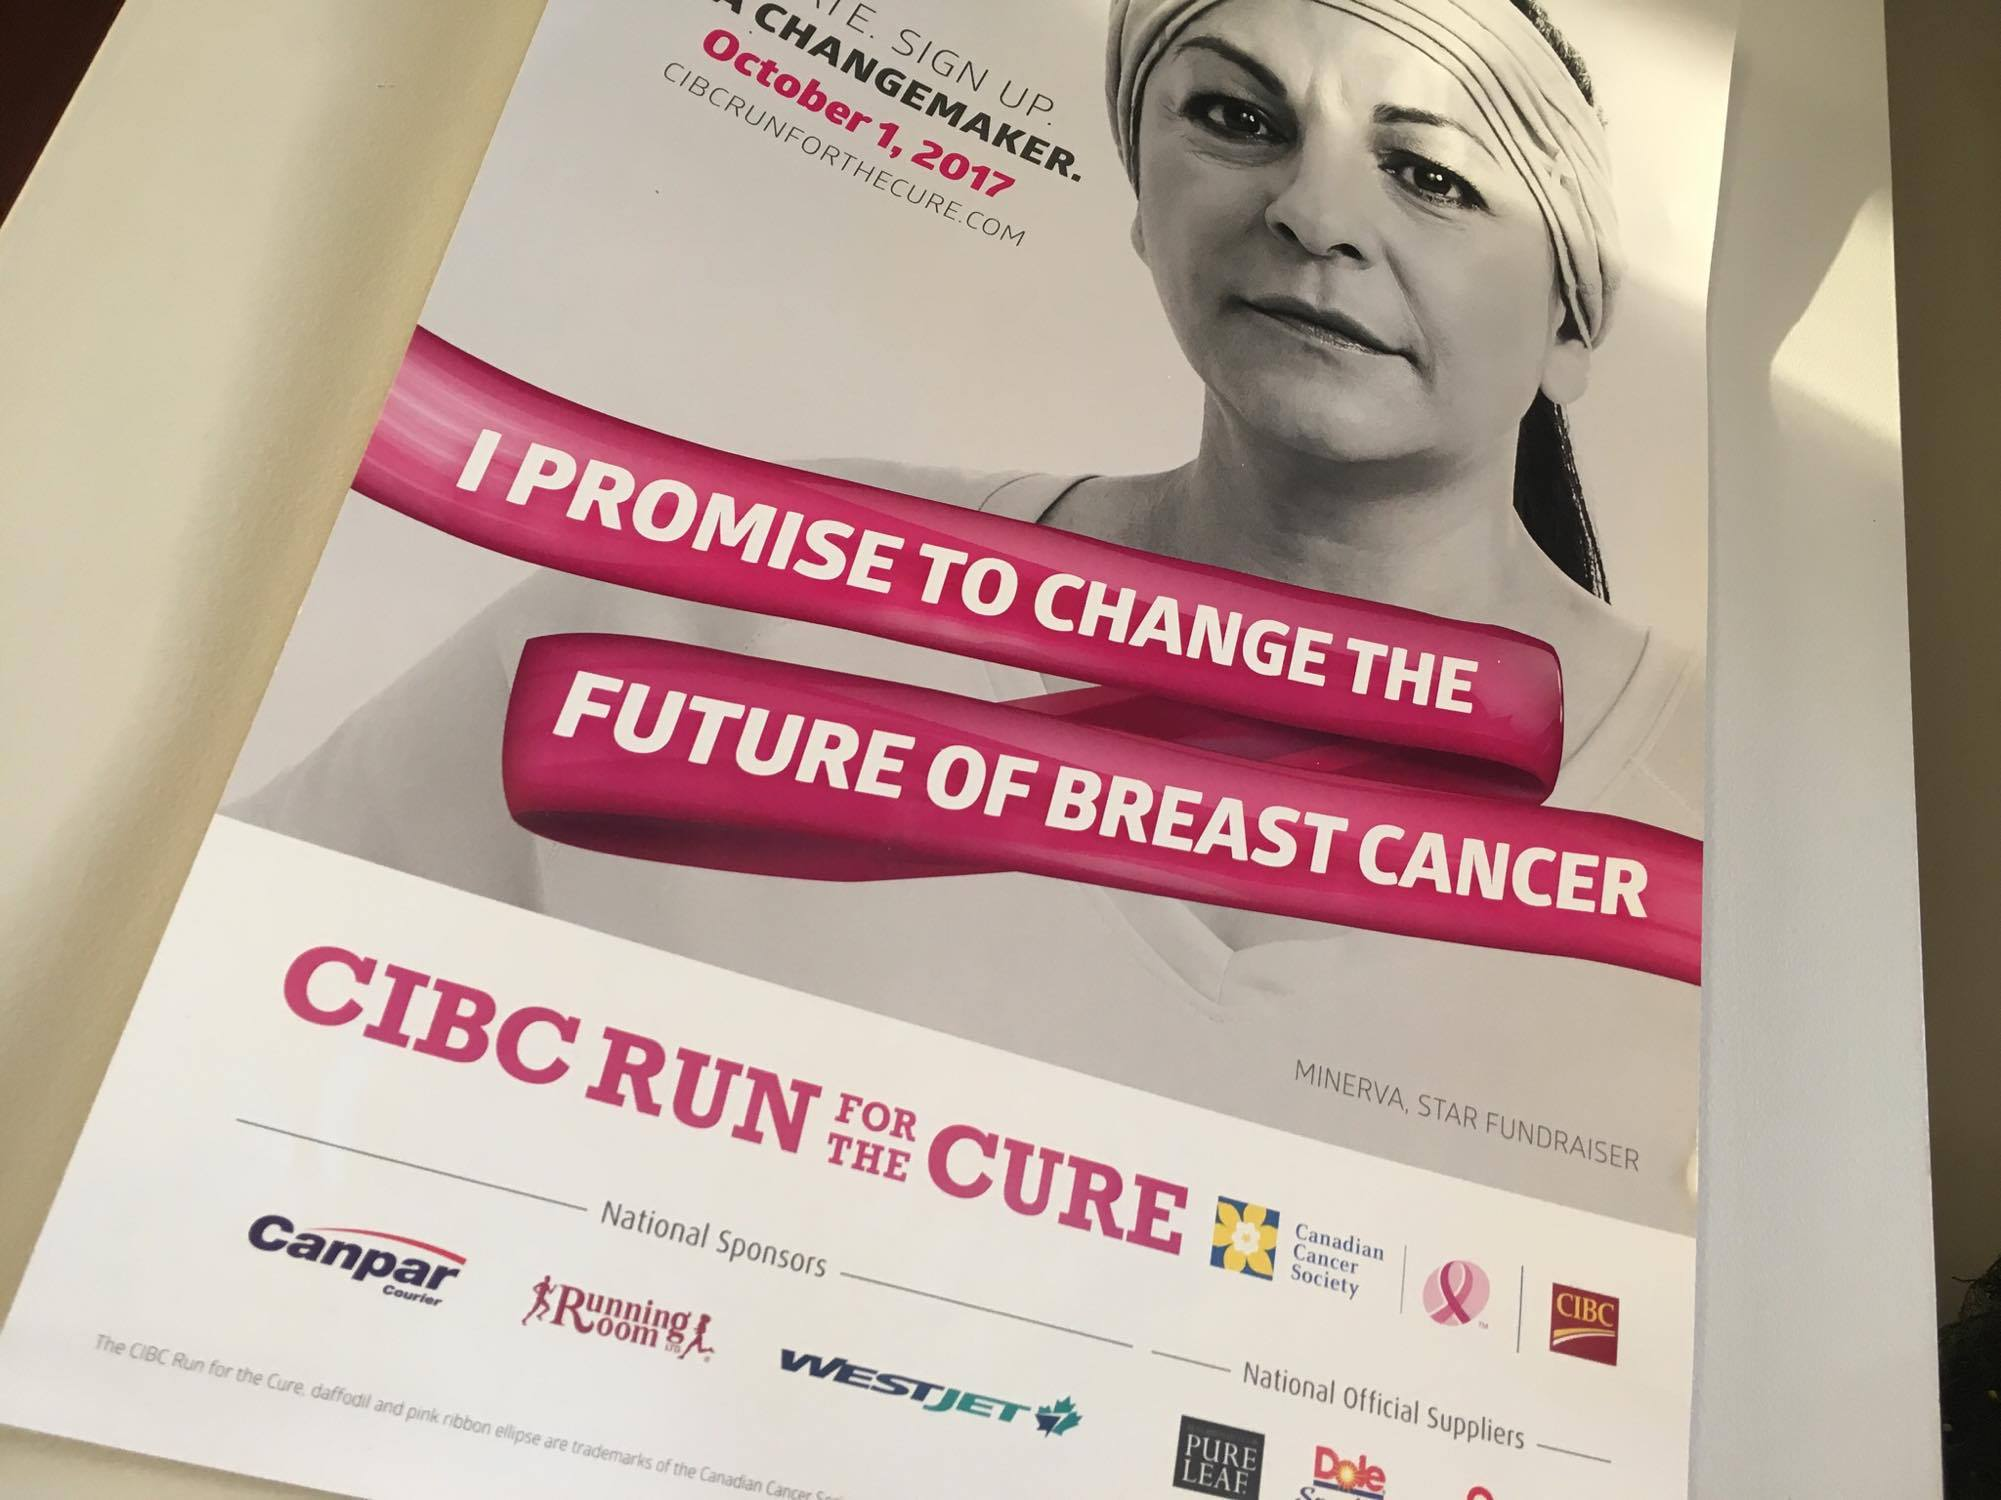 New addition to Run for the Cure in Grande Prairie